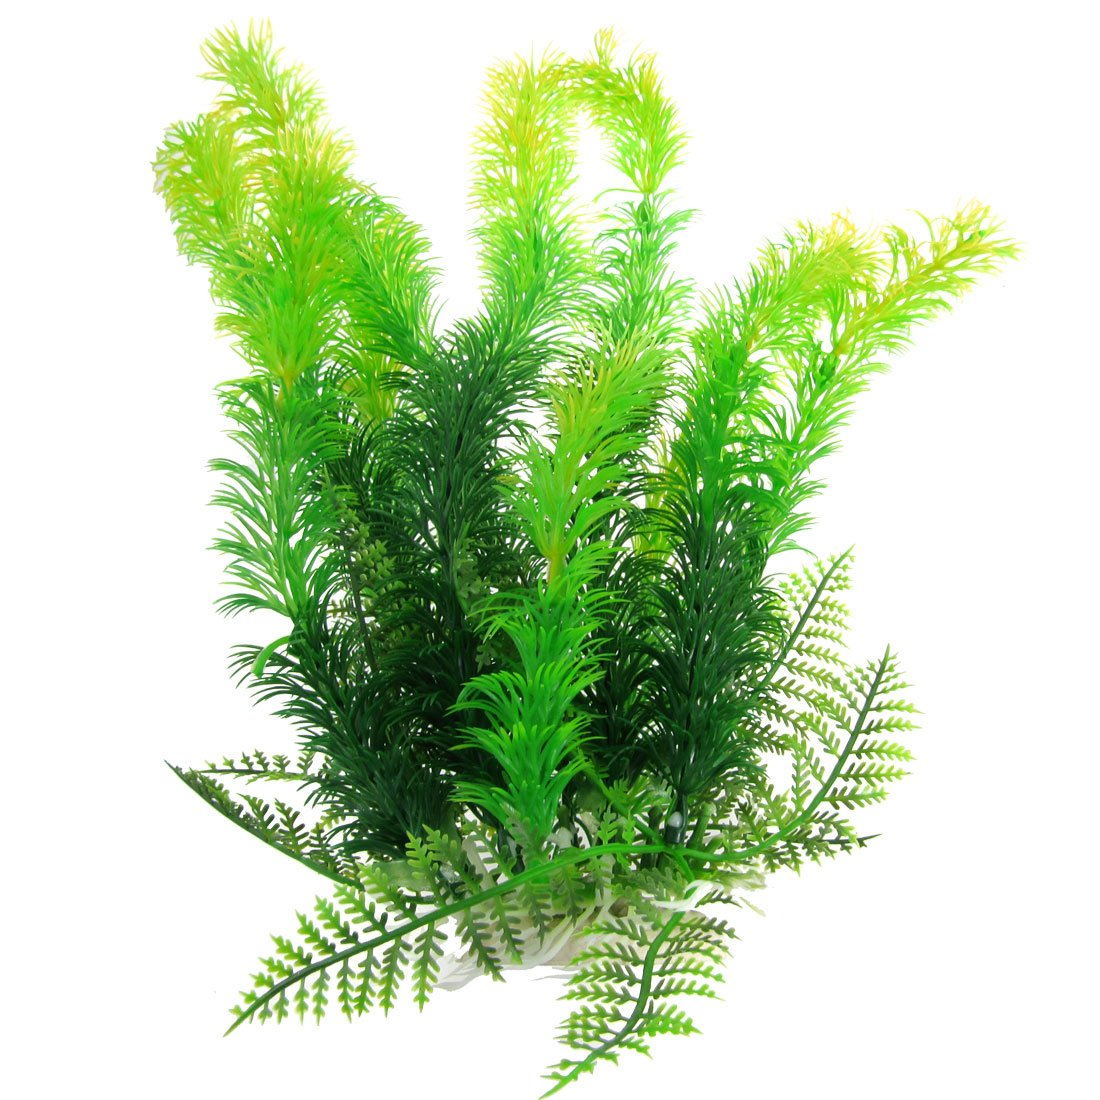 Lifelike Plants Aquarium Ceramic Base 9 8 Quot Height Plastic Aquatic Plant